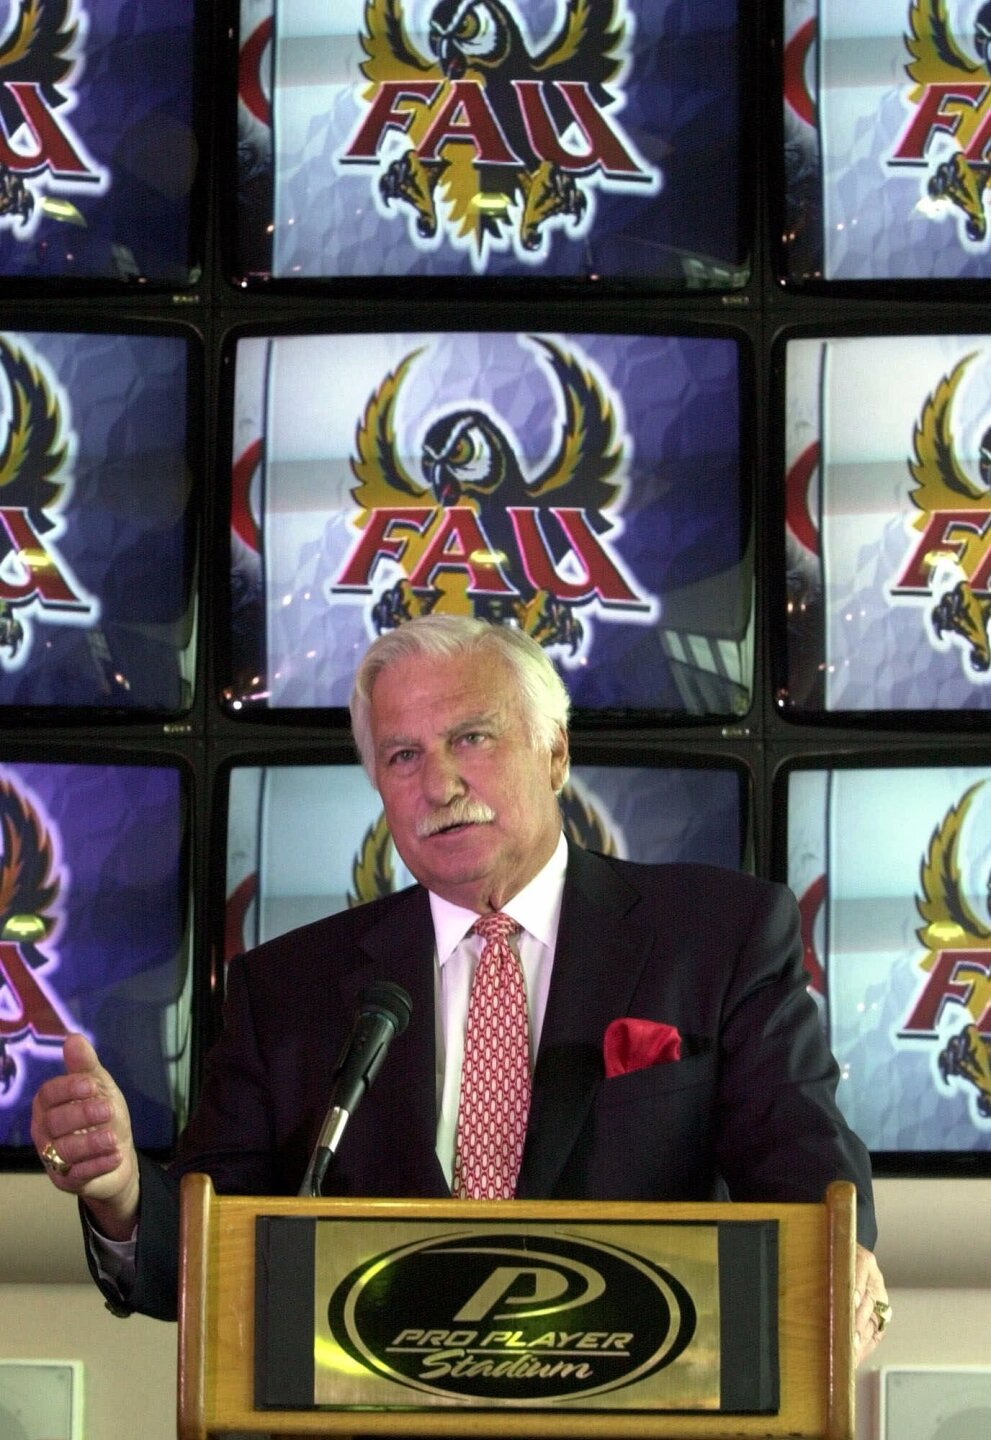 Howard Schnellenberger during news conference at Pro Player Stadium in 2000